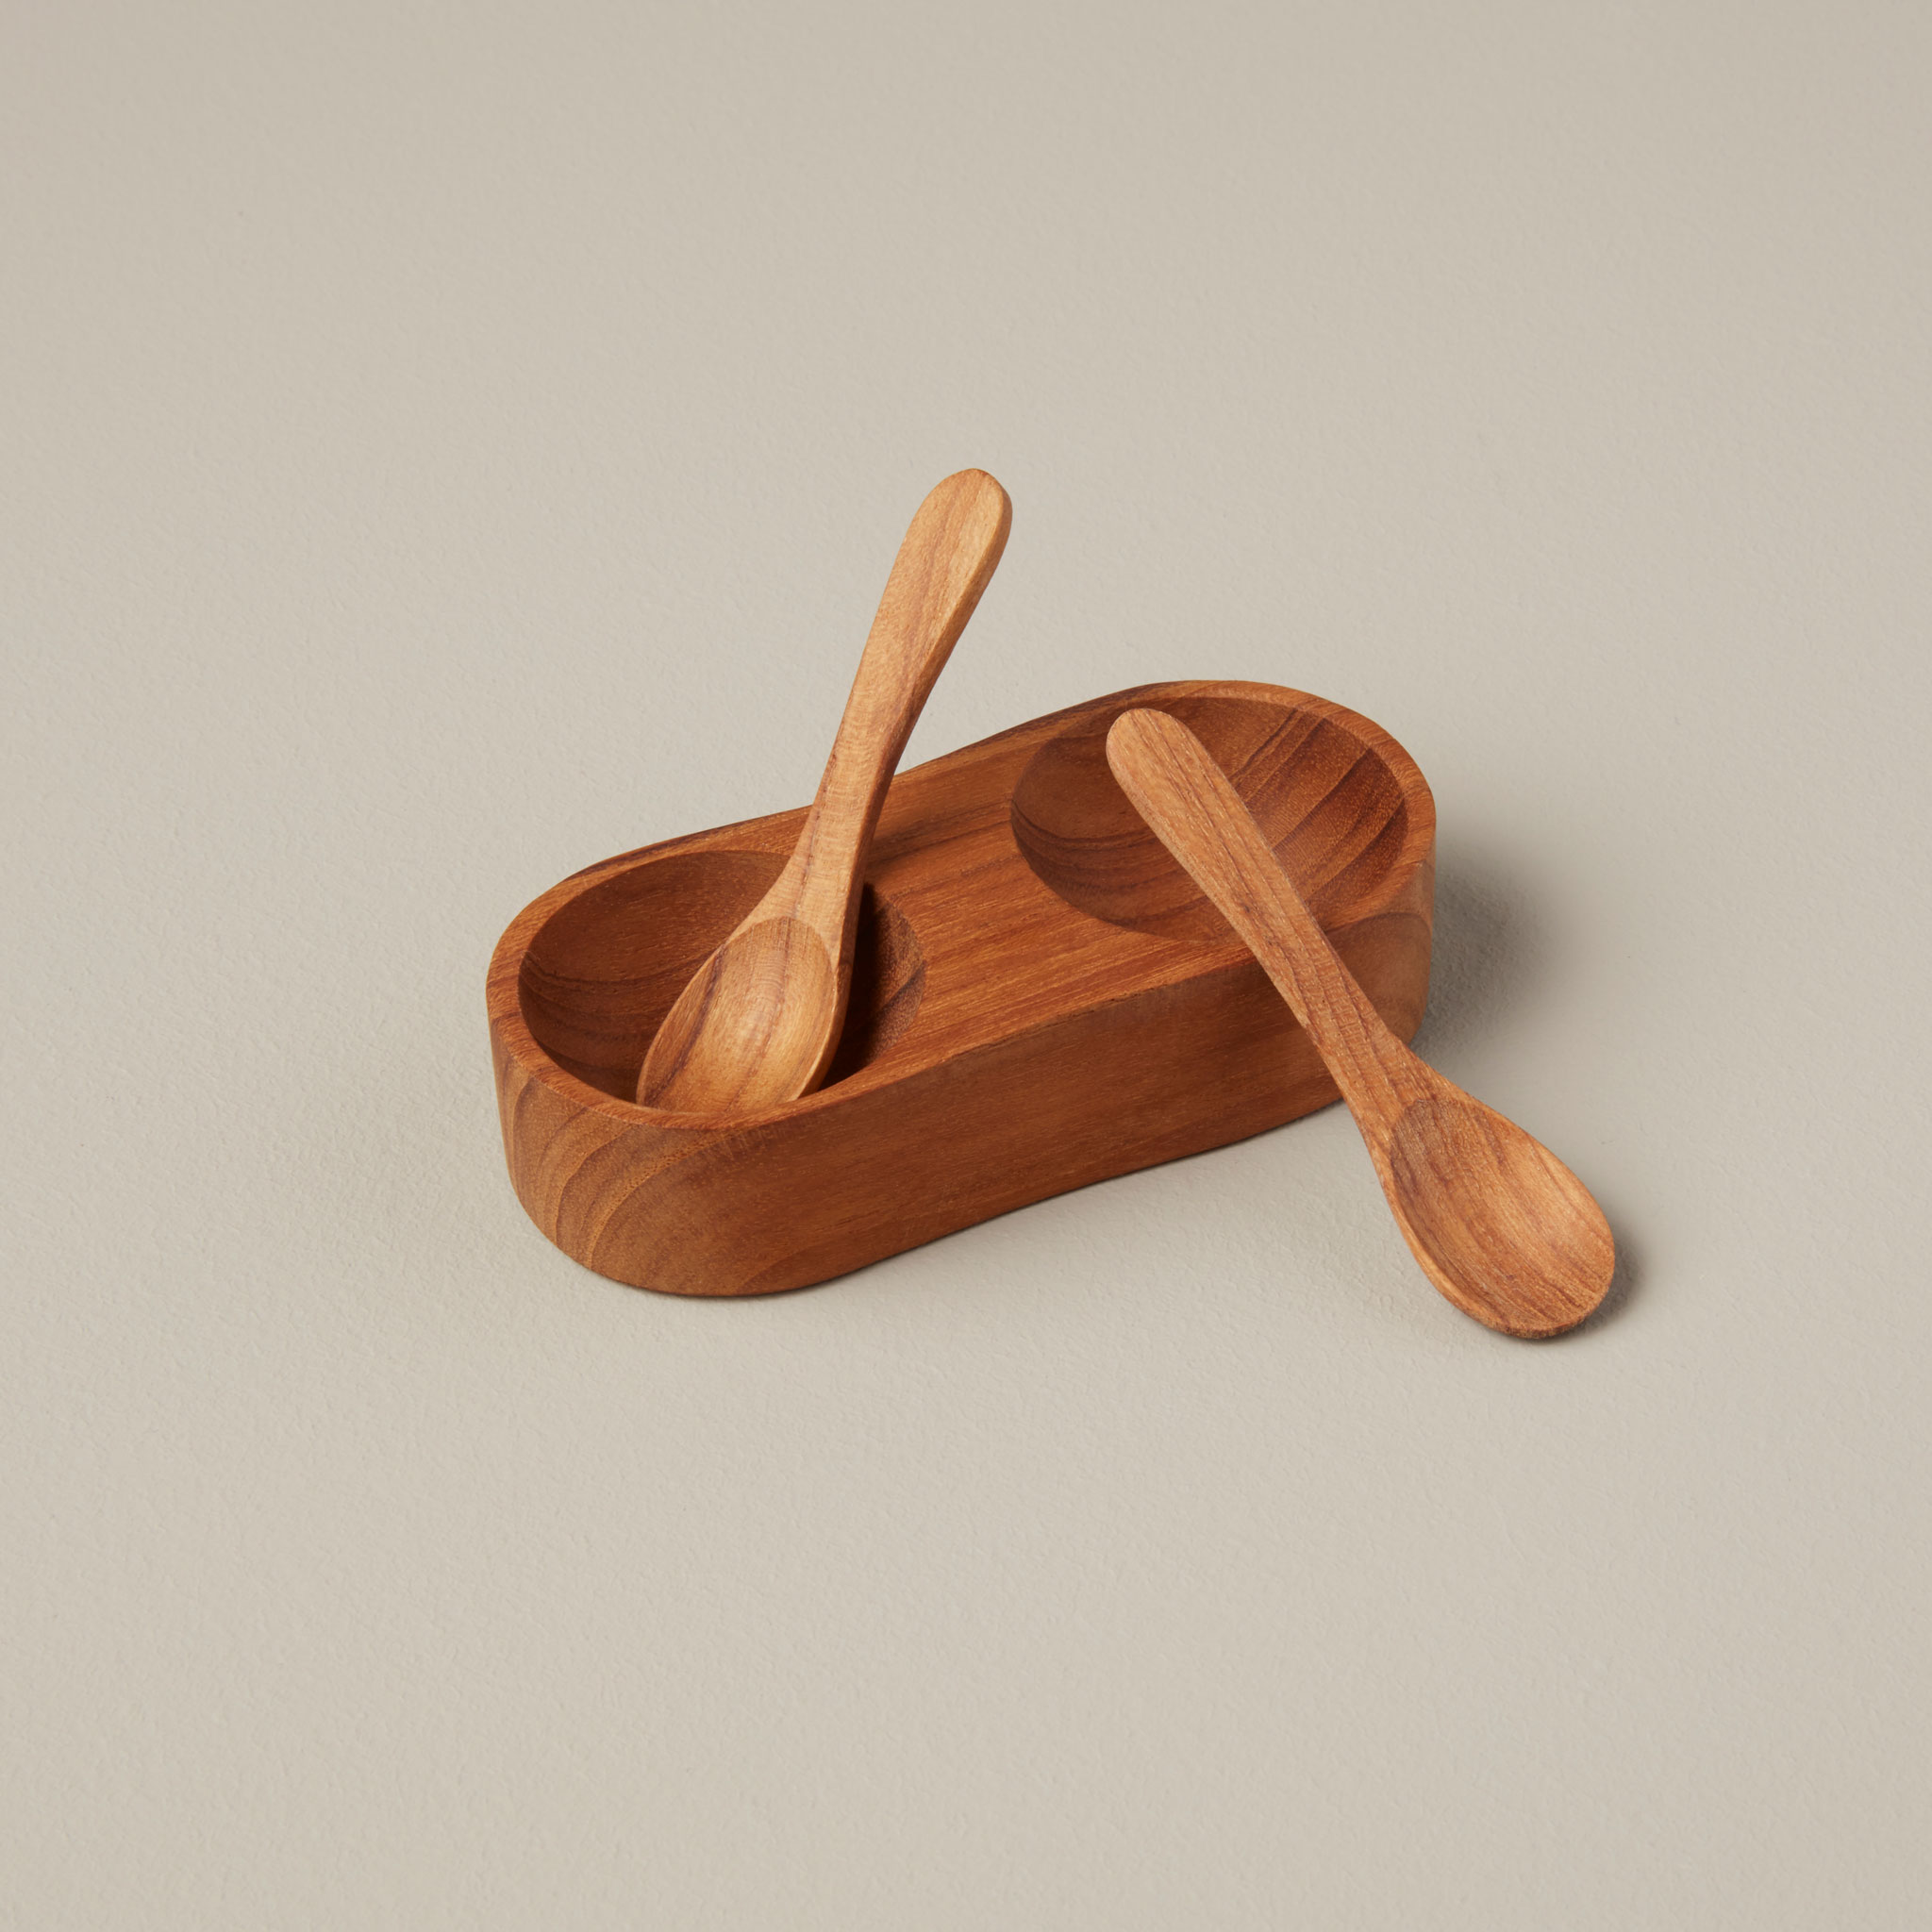 Be-Home_Teak-Salt-and-Pepper-Cellar-with-Spoons_39-02